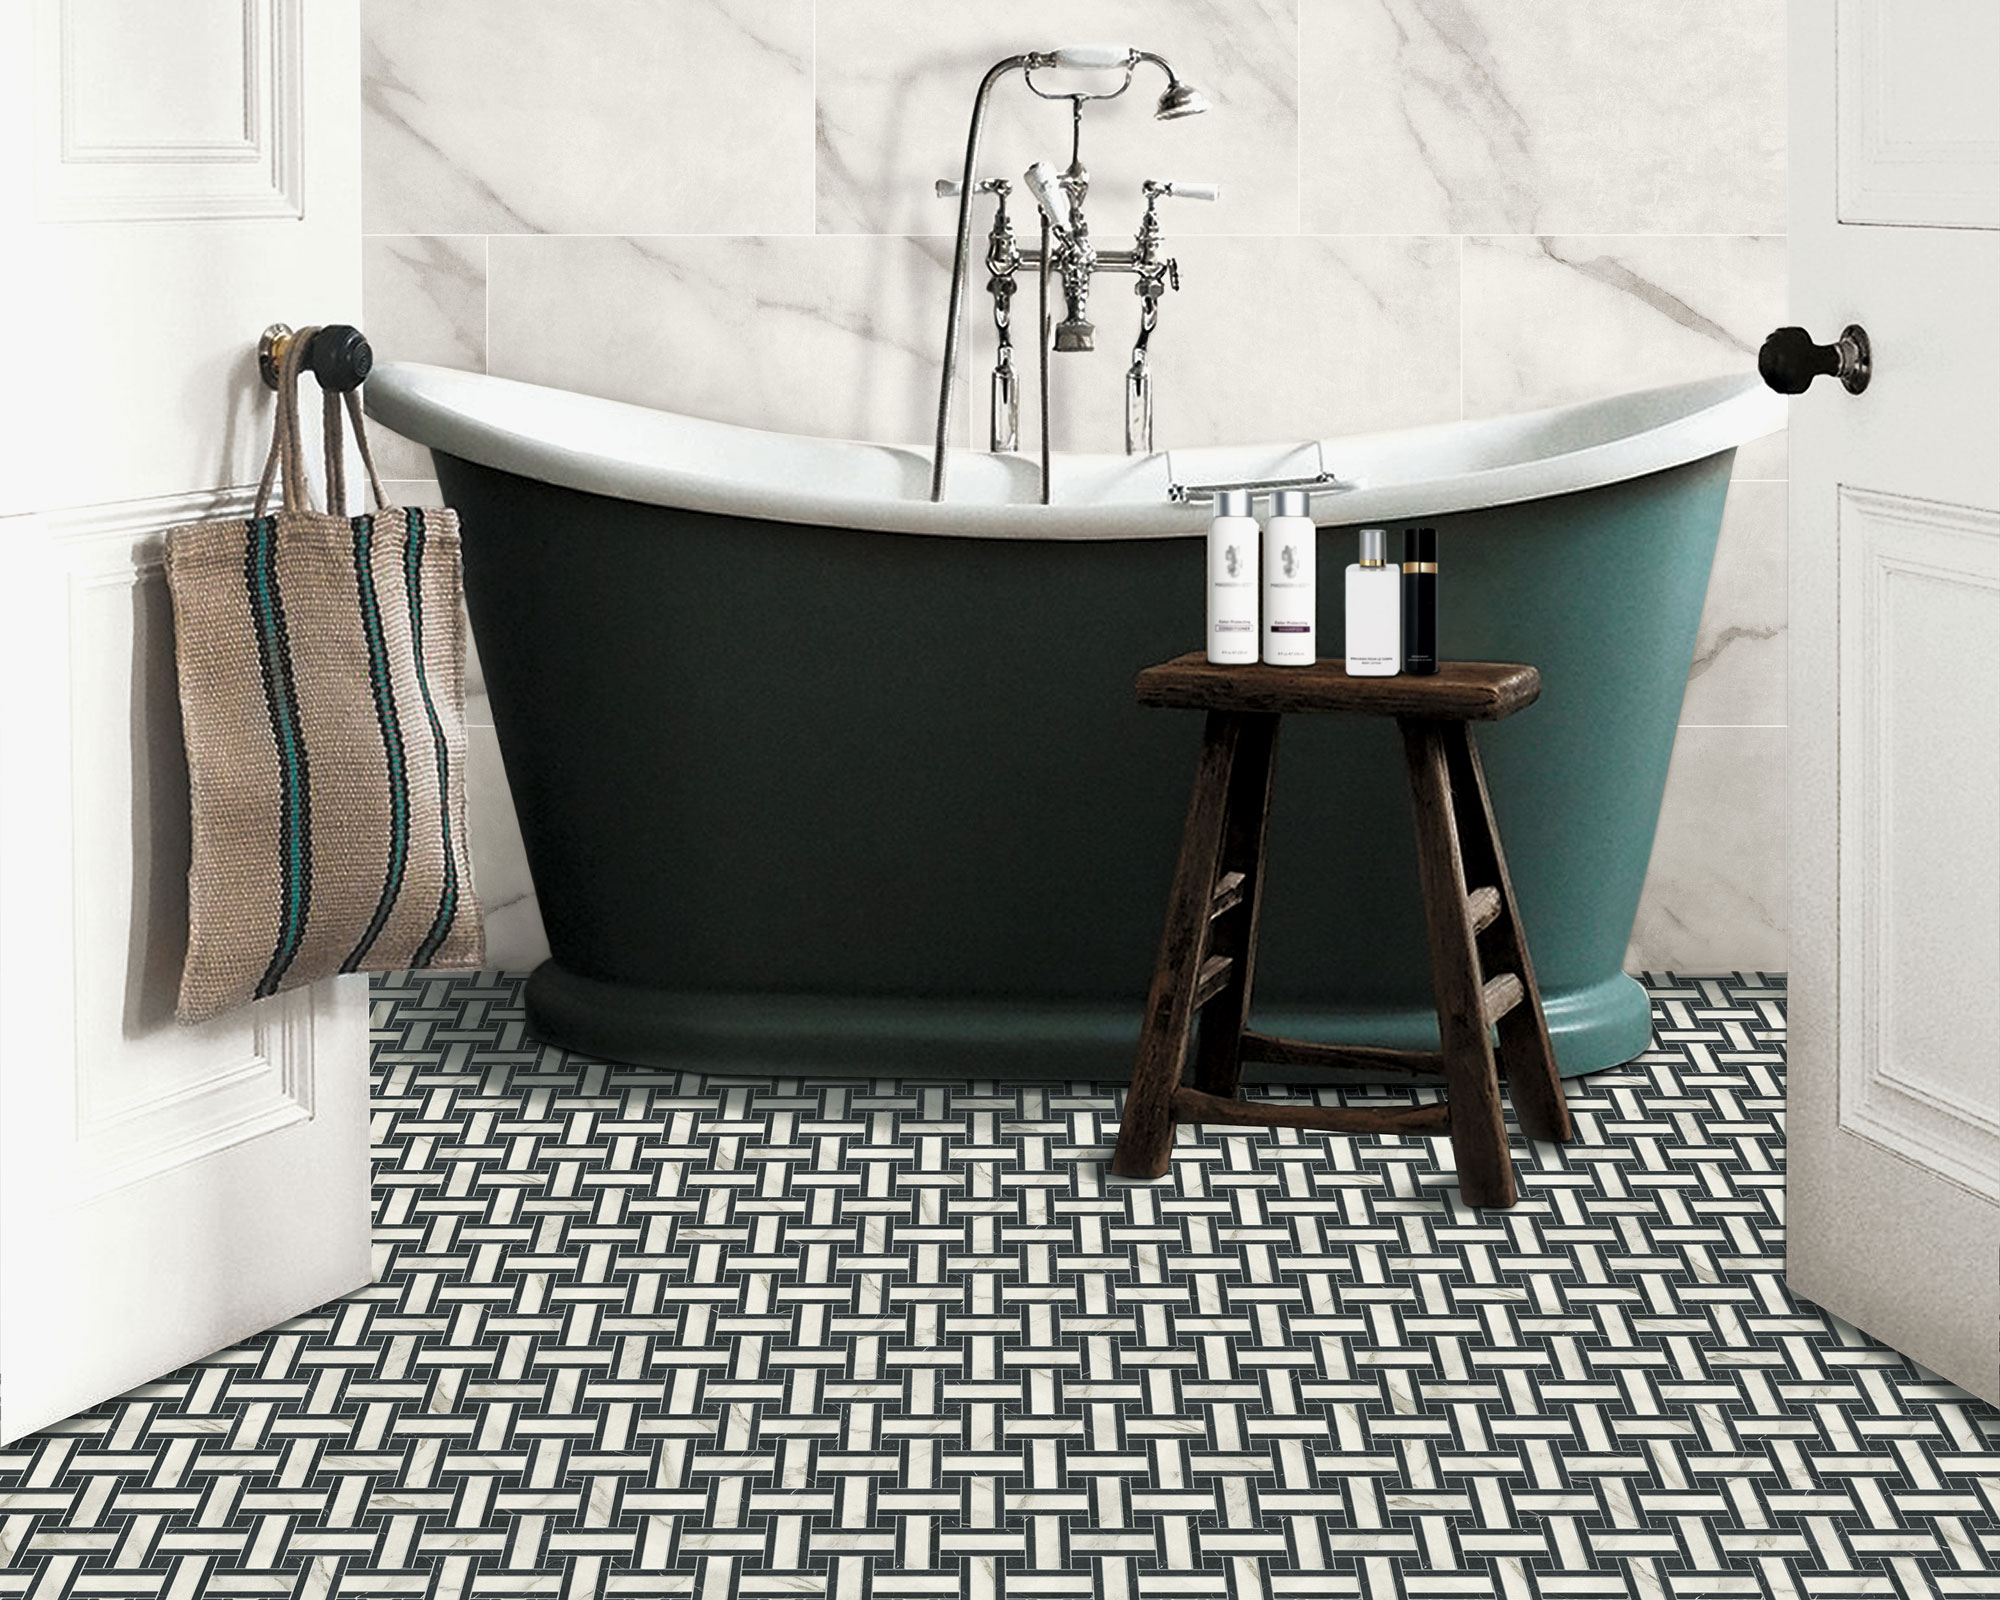 Small Bathroom Flooring Ideas From Bold Colours And Striking Patterns To Soothing Neutrals And More Homes Gardens Homes Gardensdocument Documenttype